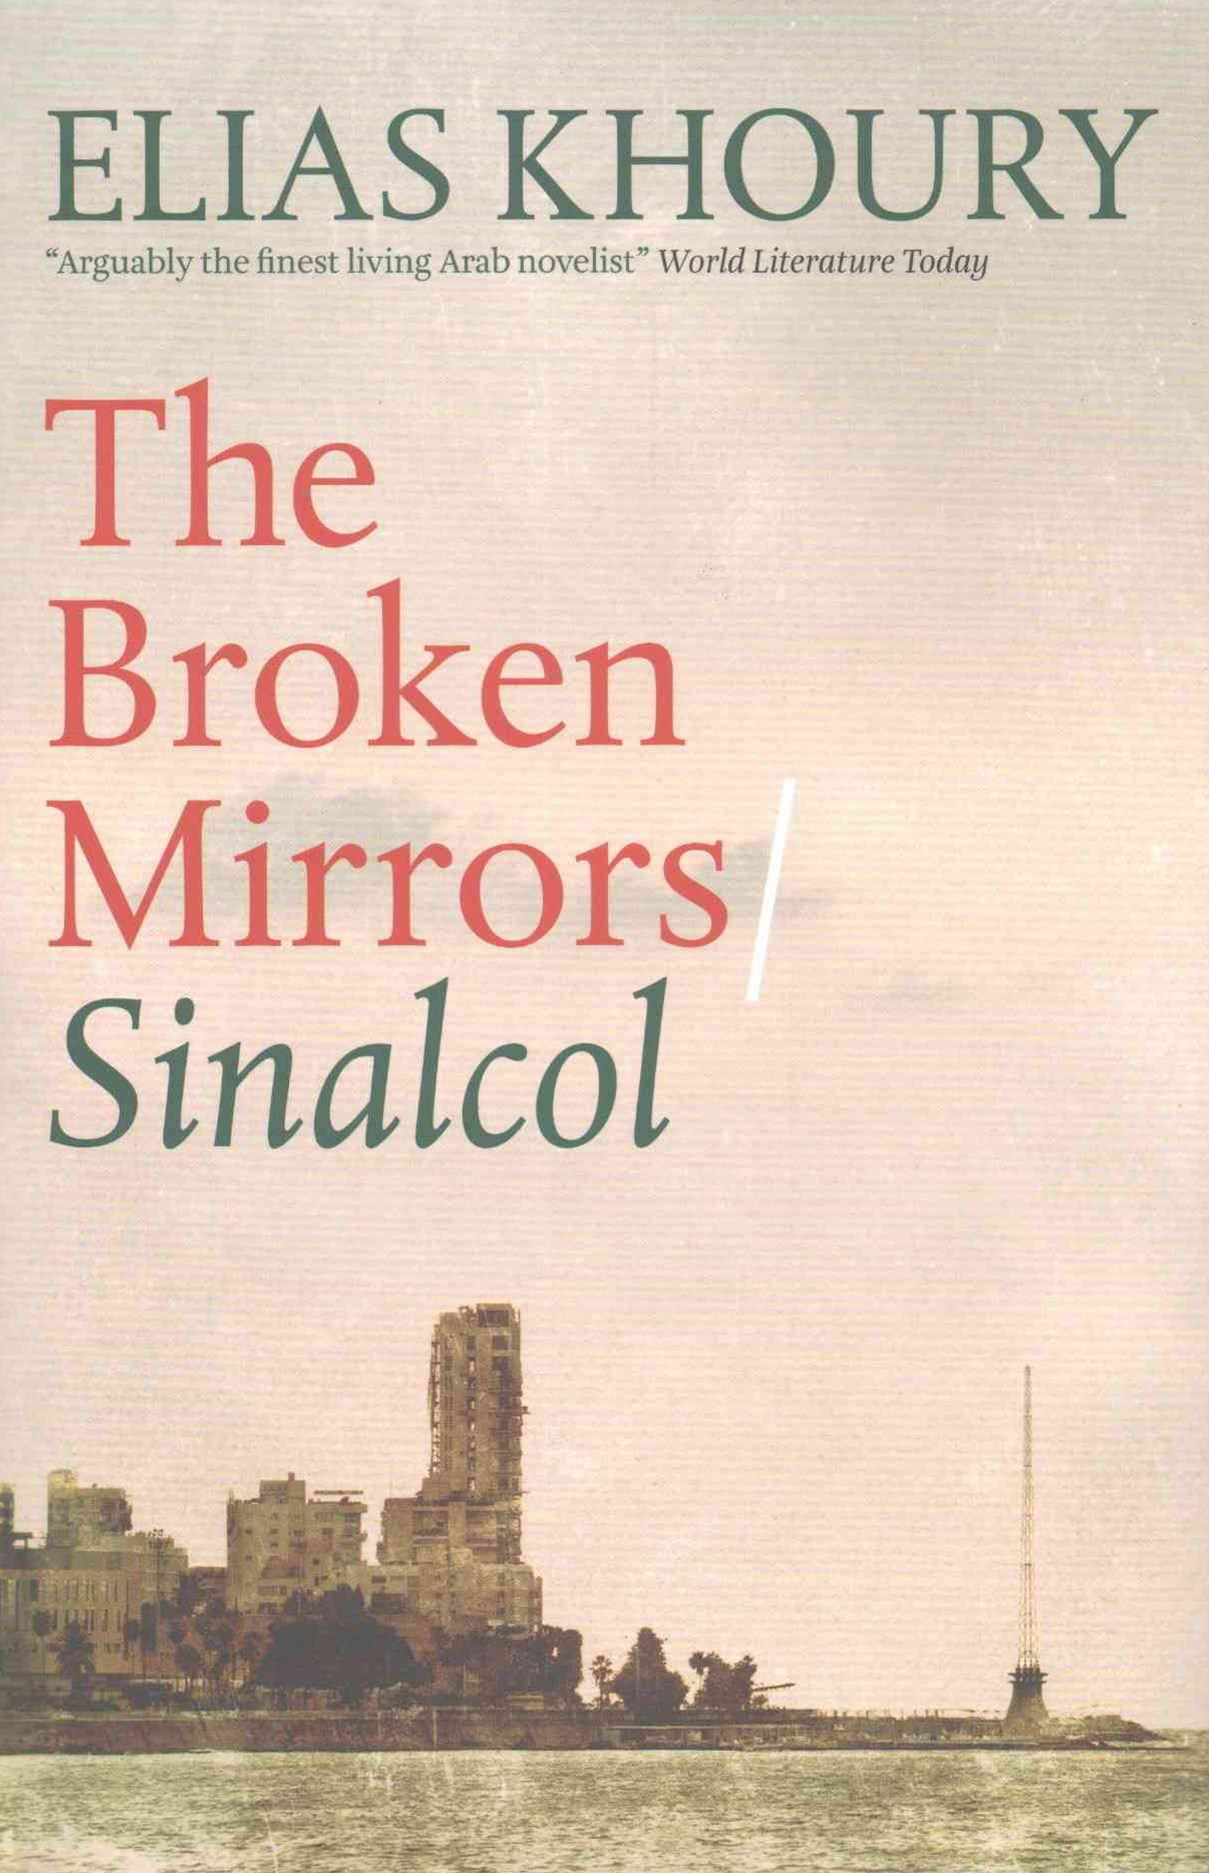 The Broken Mirrors